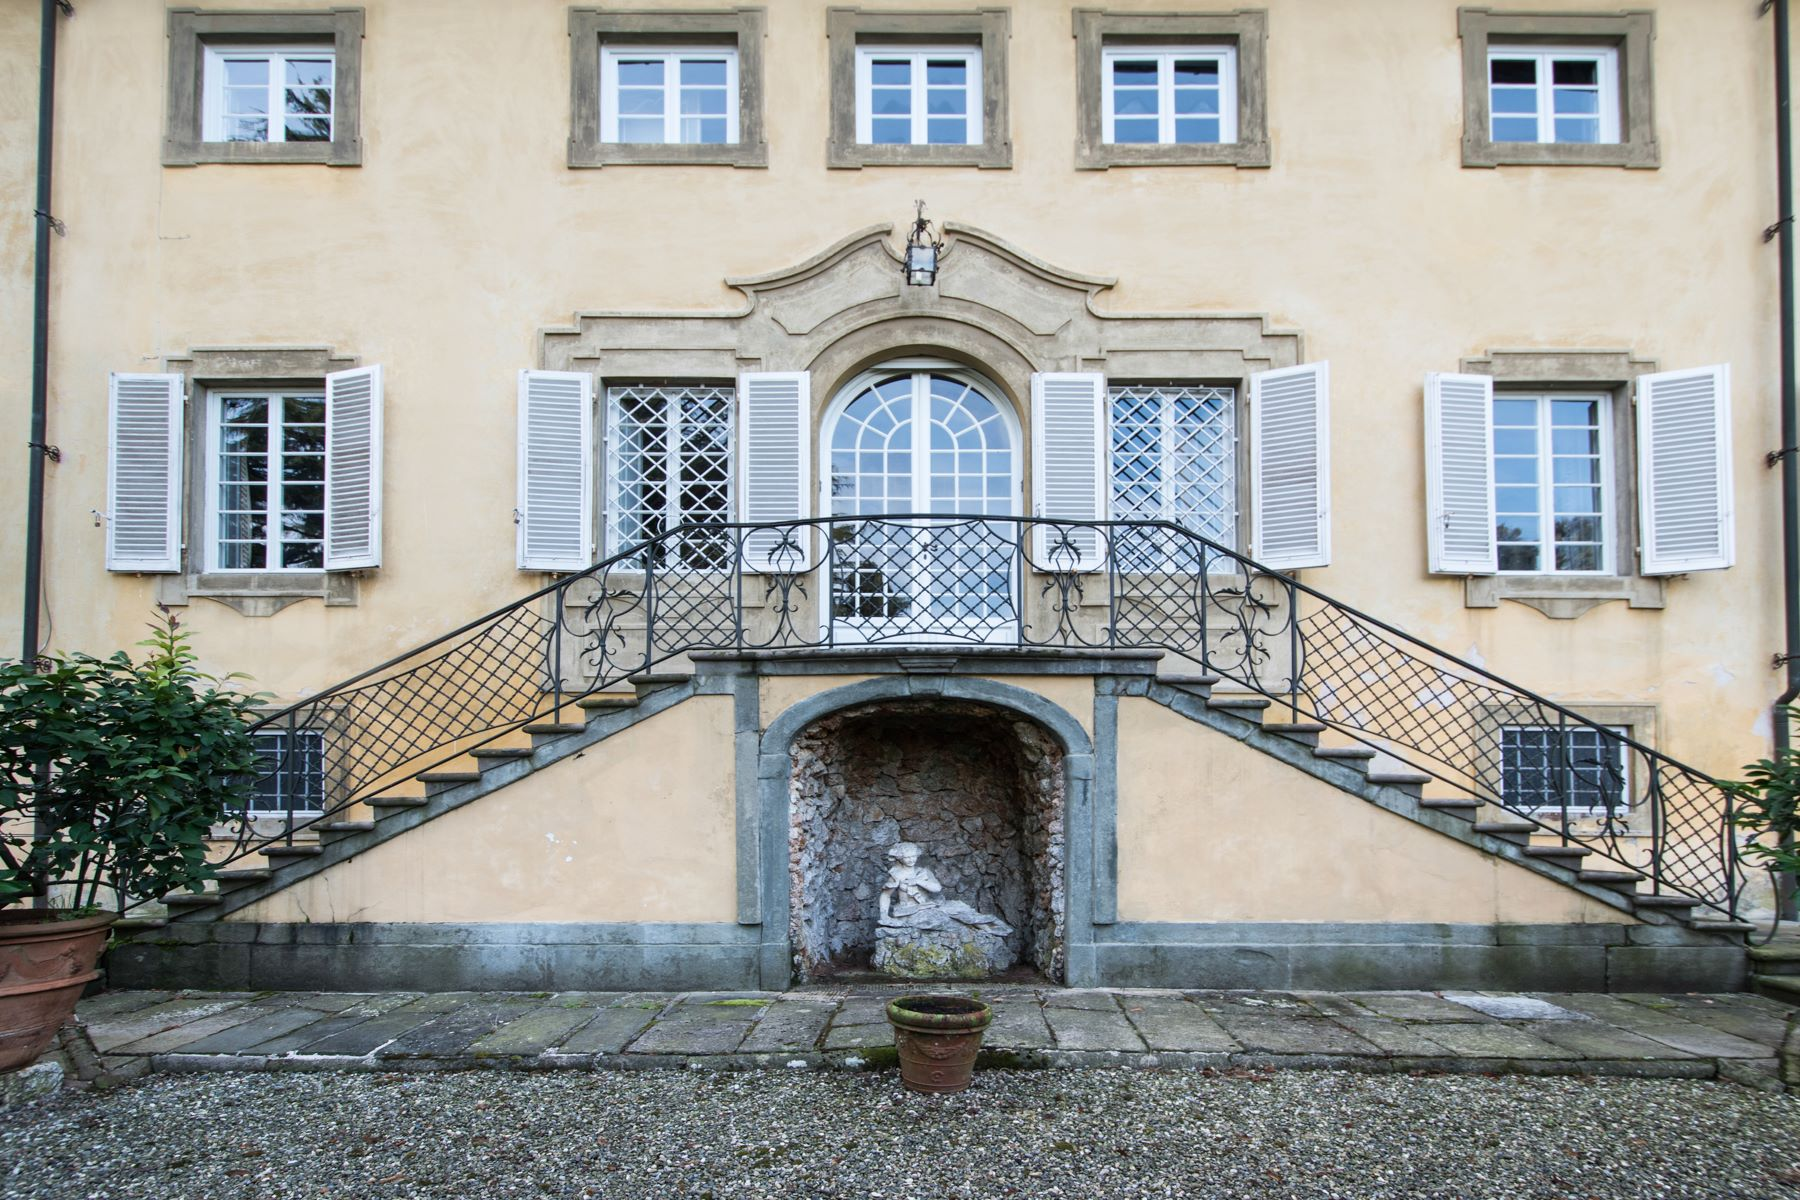 Single Family Home for Sale at Charming 18th century villa in Lucca countryside Montuolo Lucca, 55100 Italy